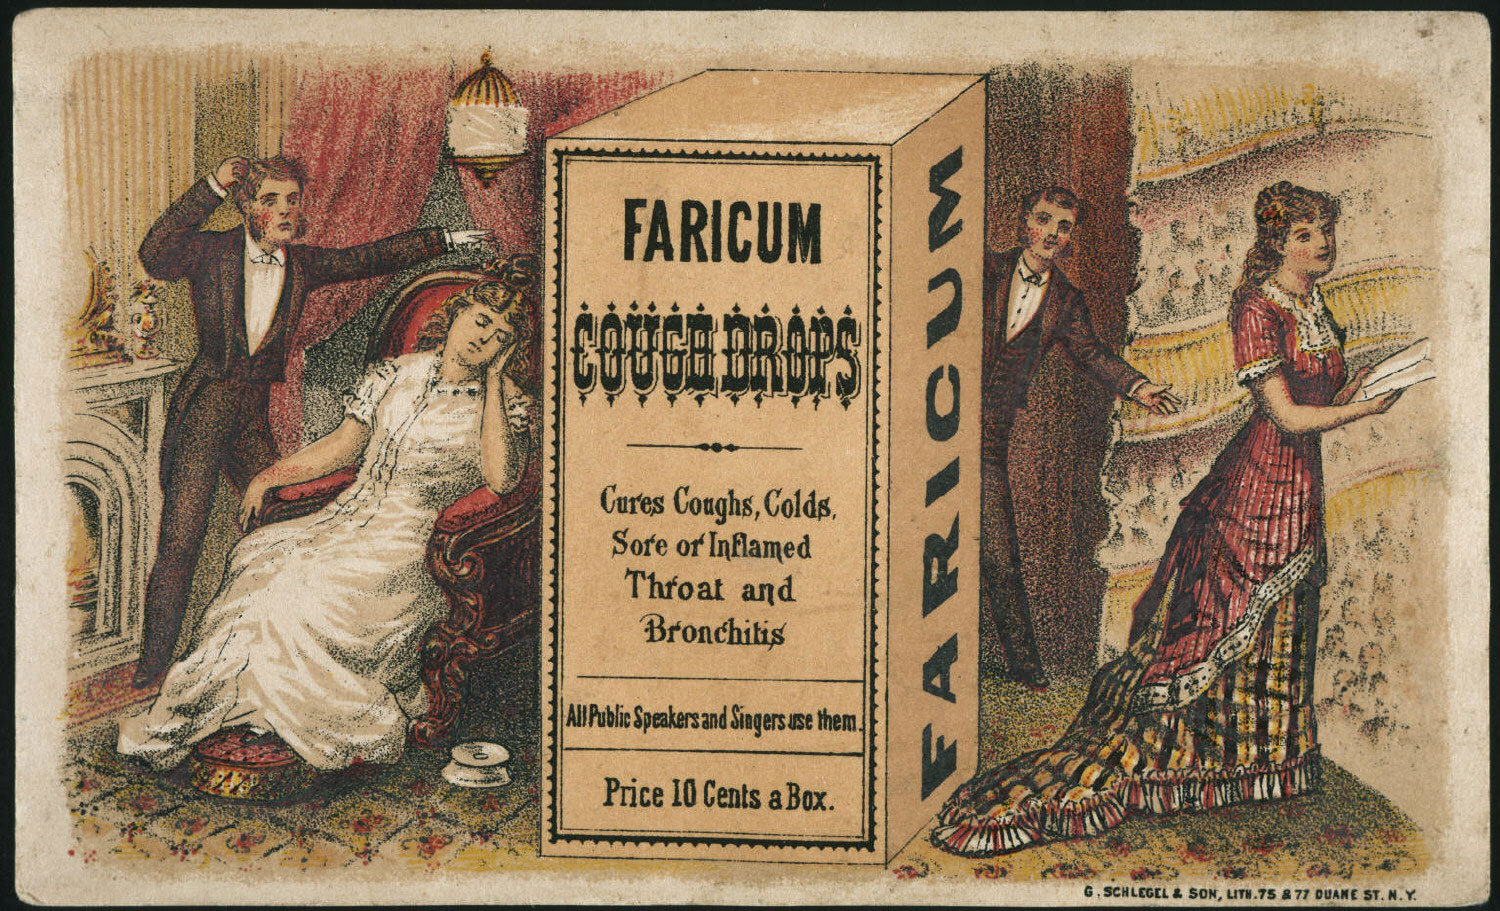 Faricum Cough Drops - All Public Speakers and Actors Use Them